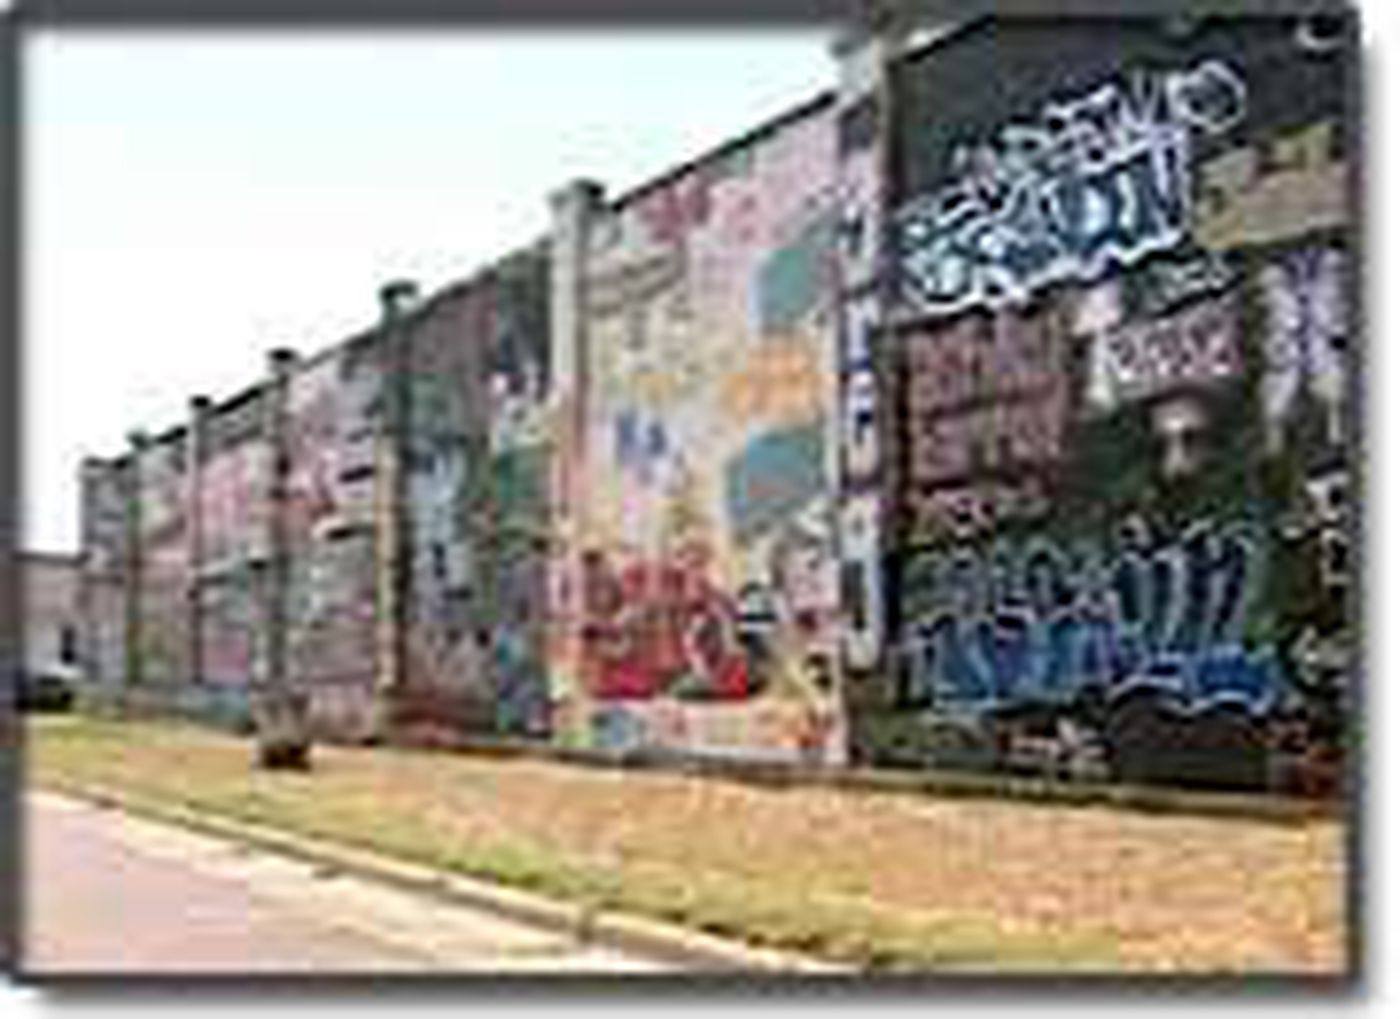 It looks like graffiti but whats known as the graffiti wall is not an eyesore in lamesa its a tradition